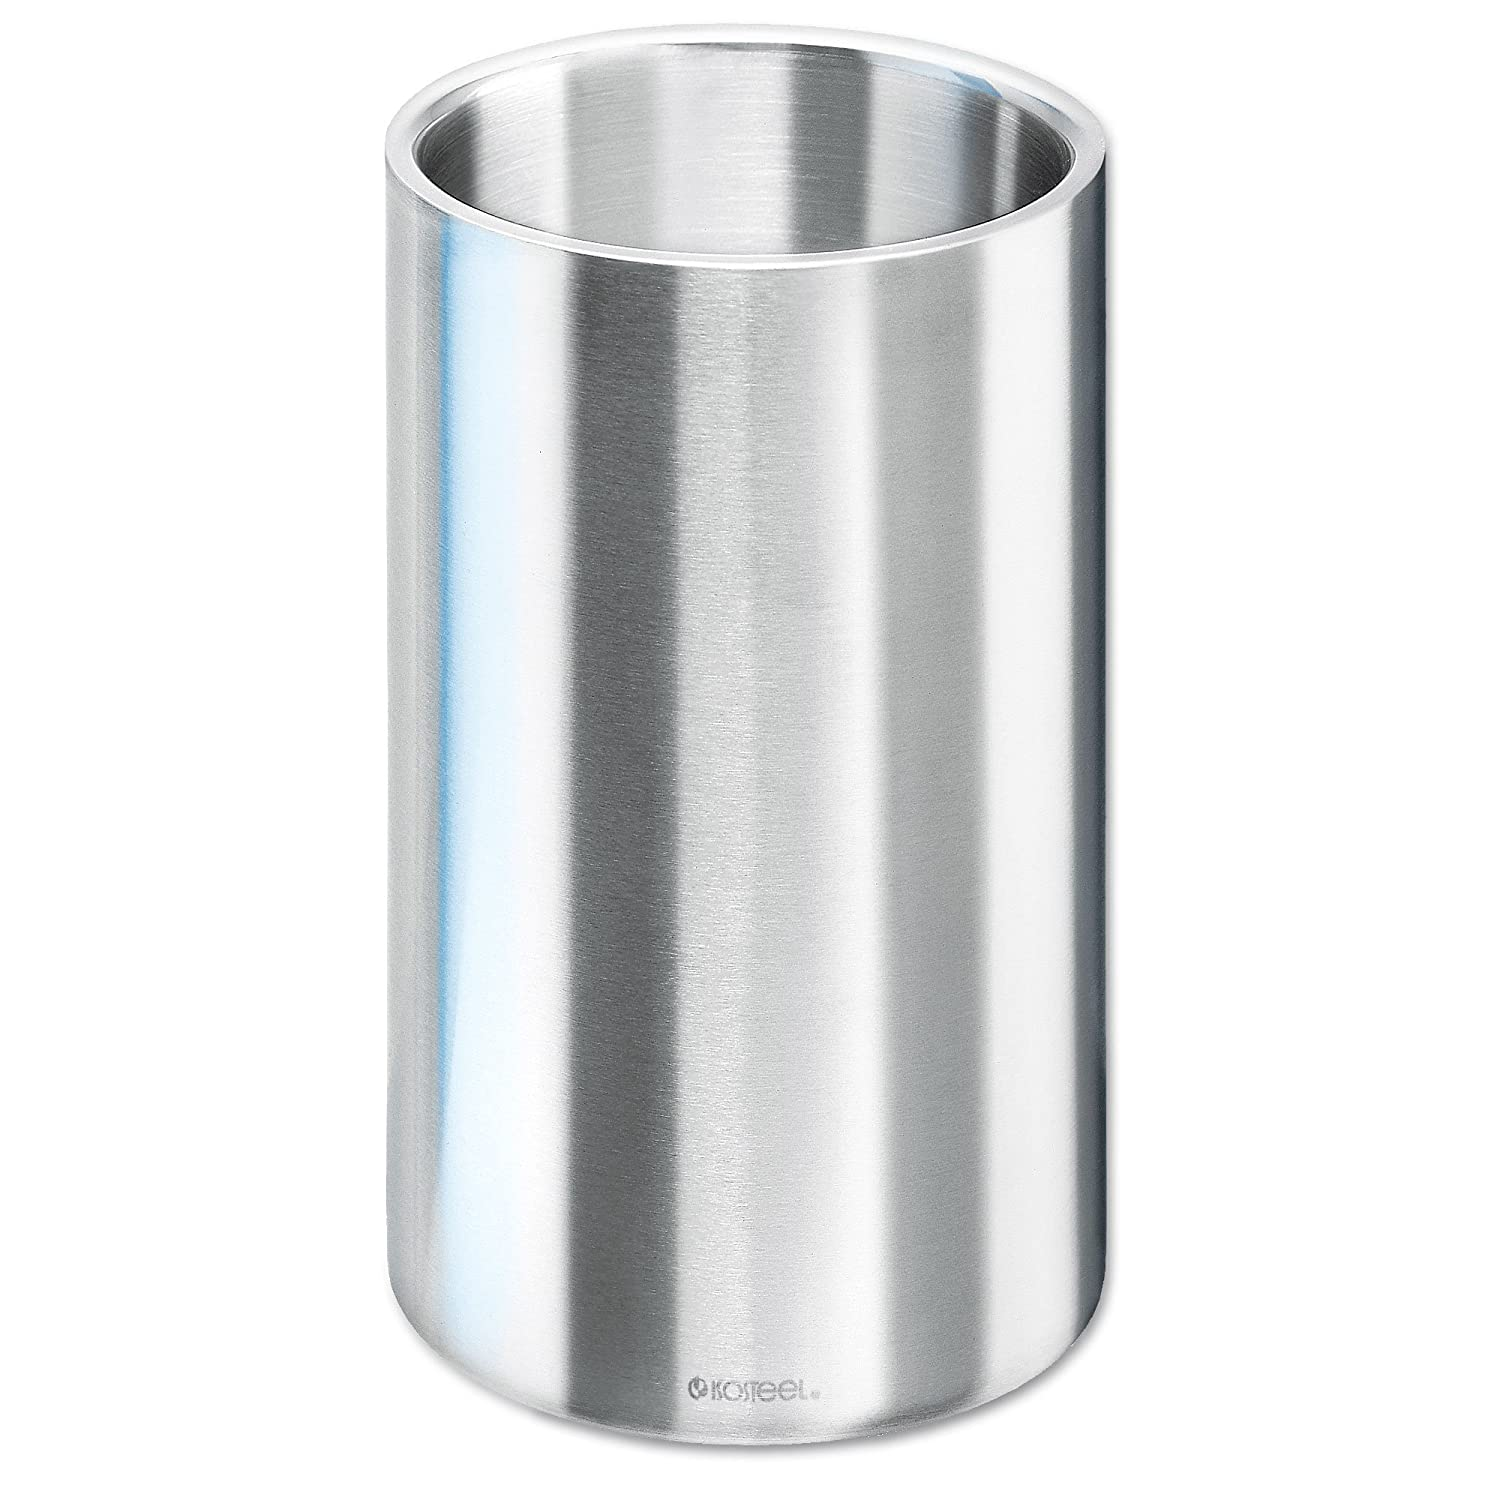 Isosteel VA-9568 Bottle Cooler Double-Layered 18/8 Stainless Steel with Matt Brushed Surface LiteXpress